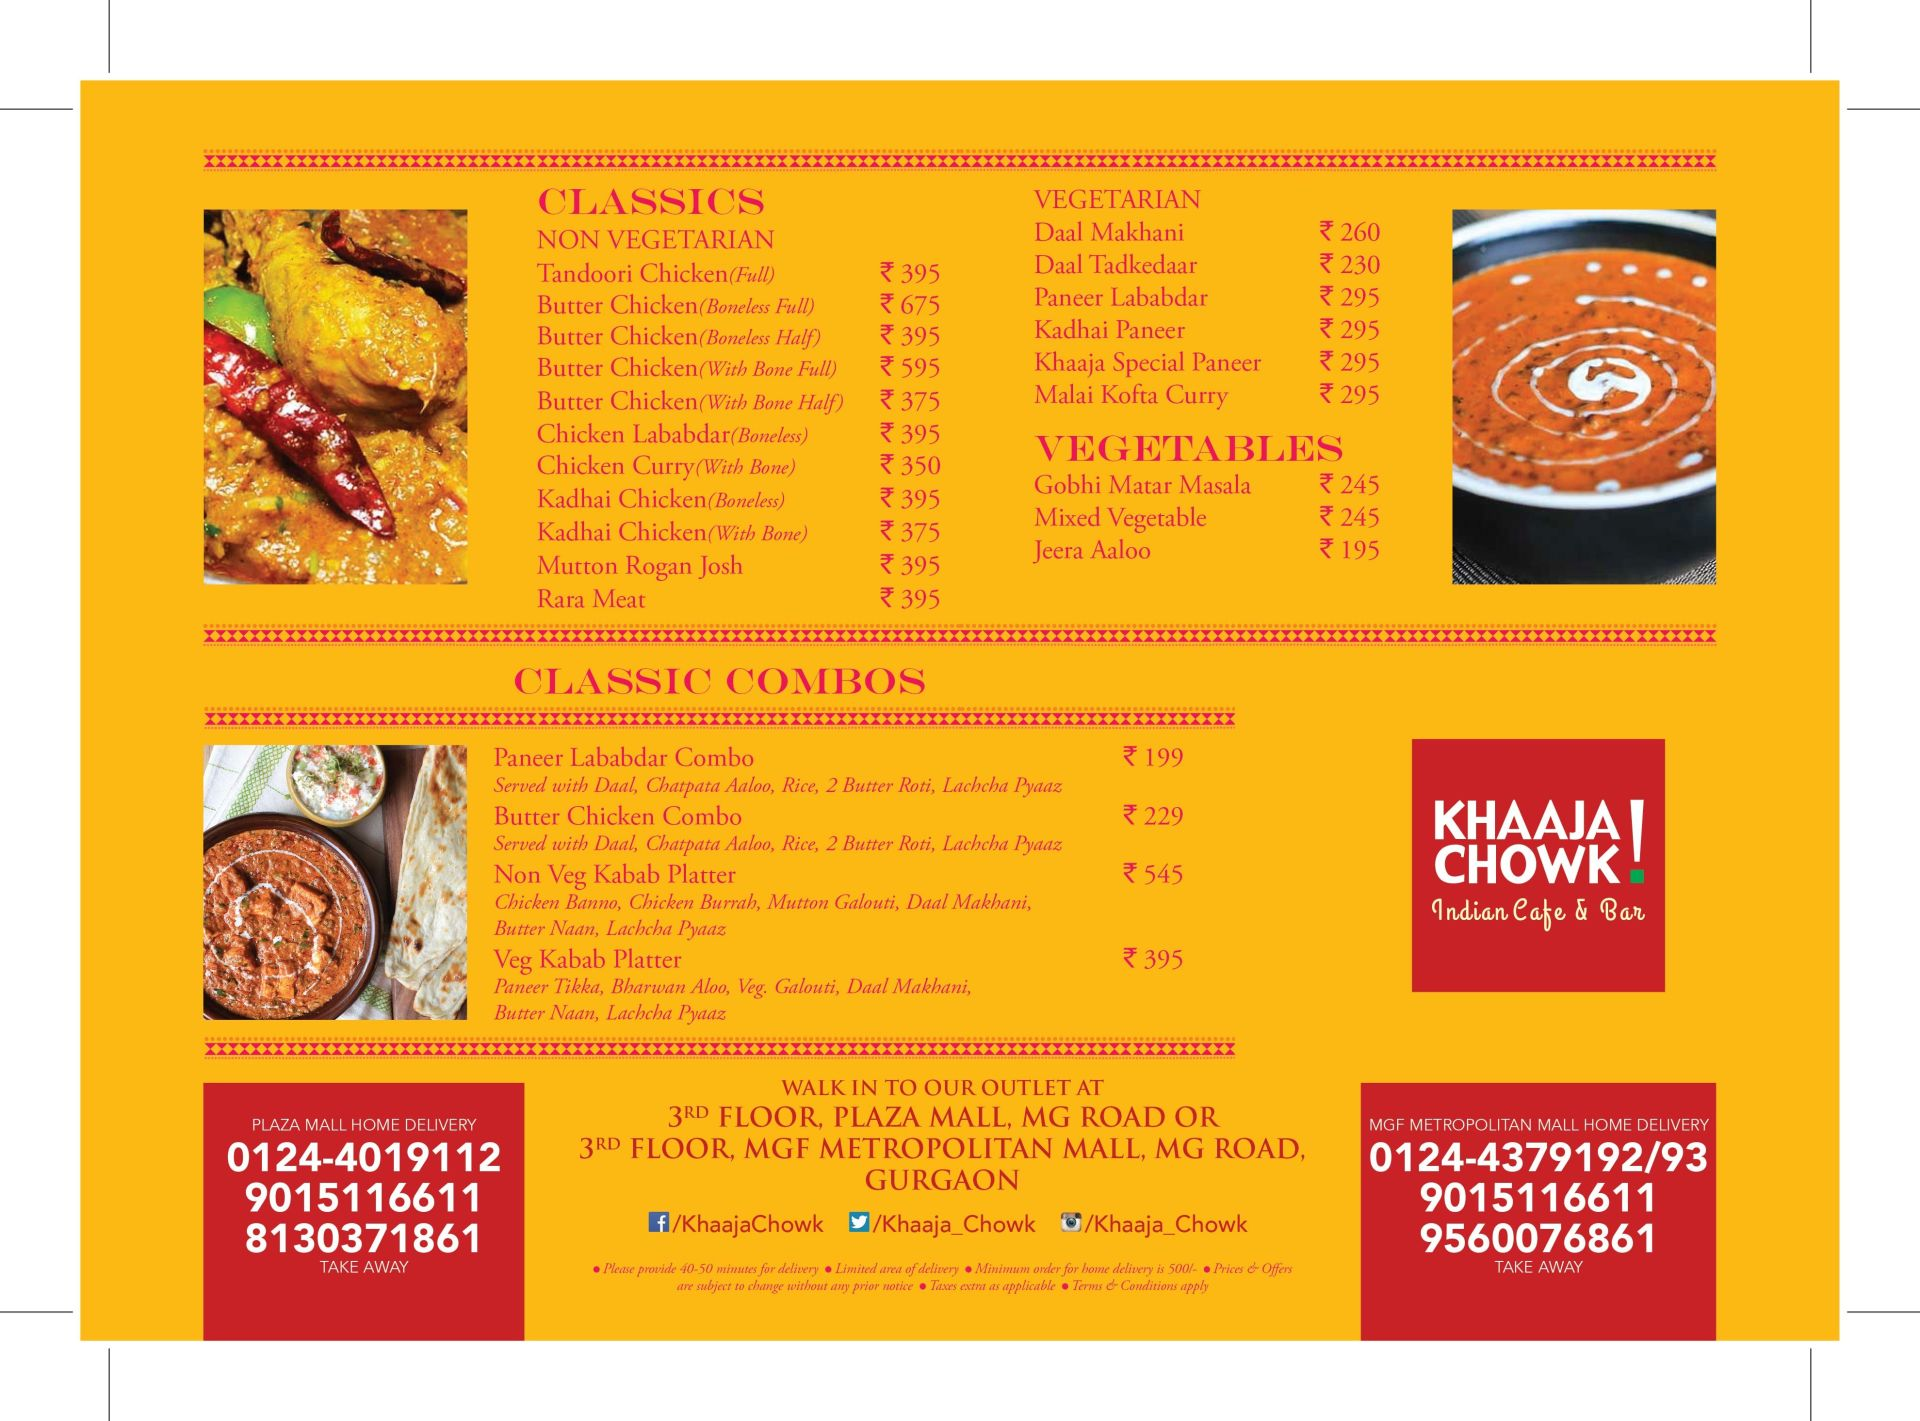 Menu of the Khaaja Chowk